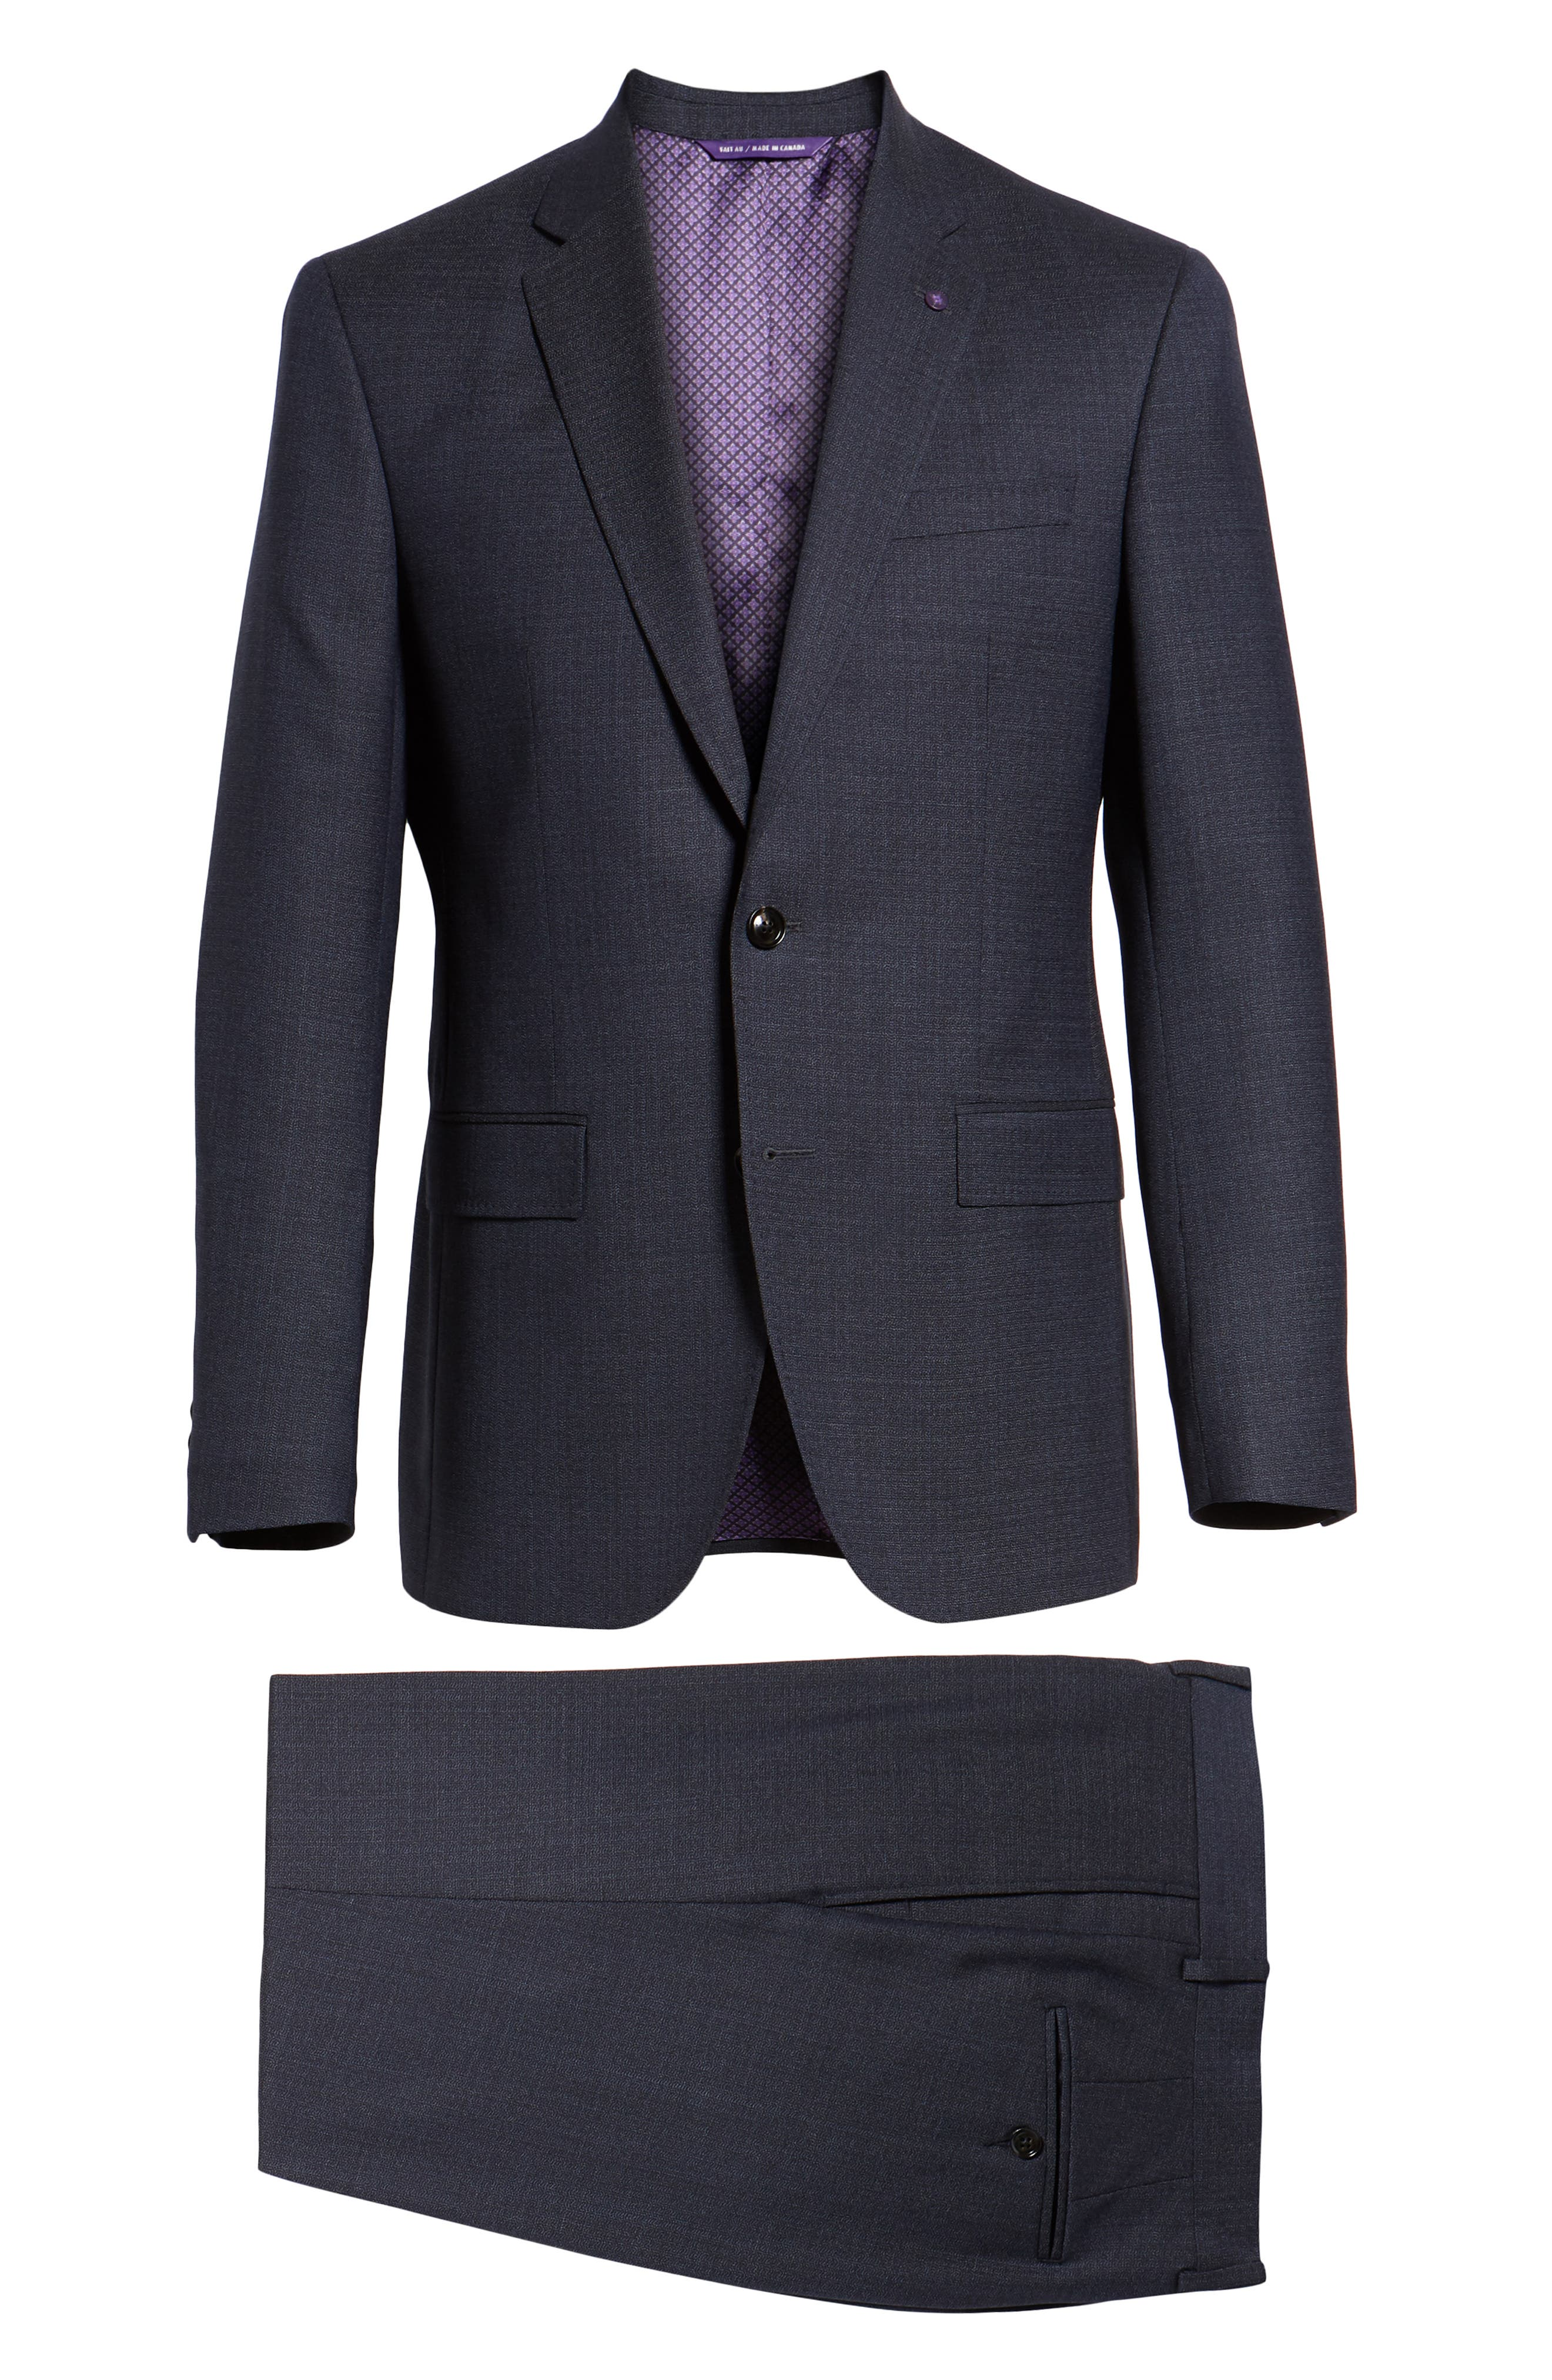 Jay Trim Fit Solid Wool Suit,                             Alternate thumbnail 8, color,                             020